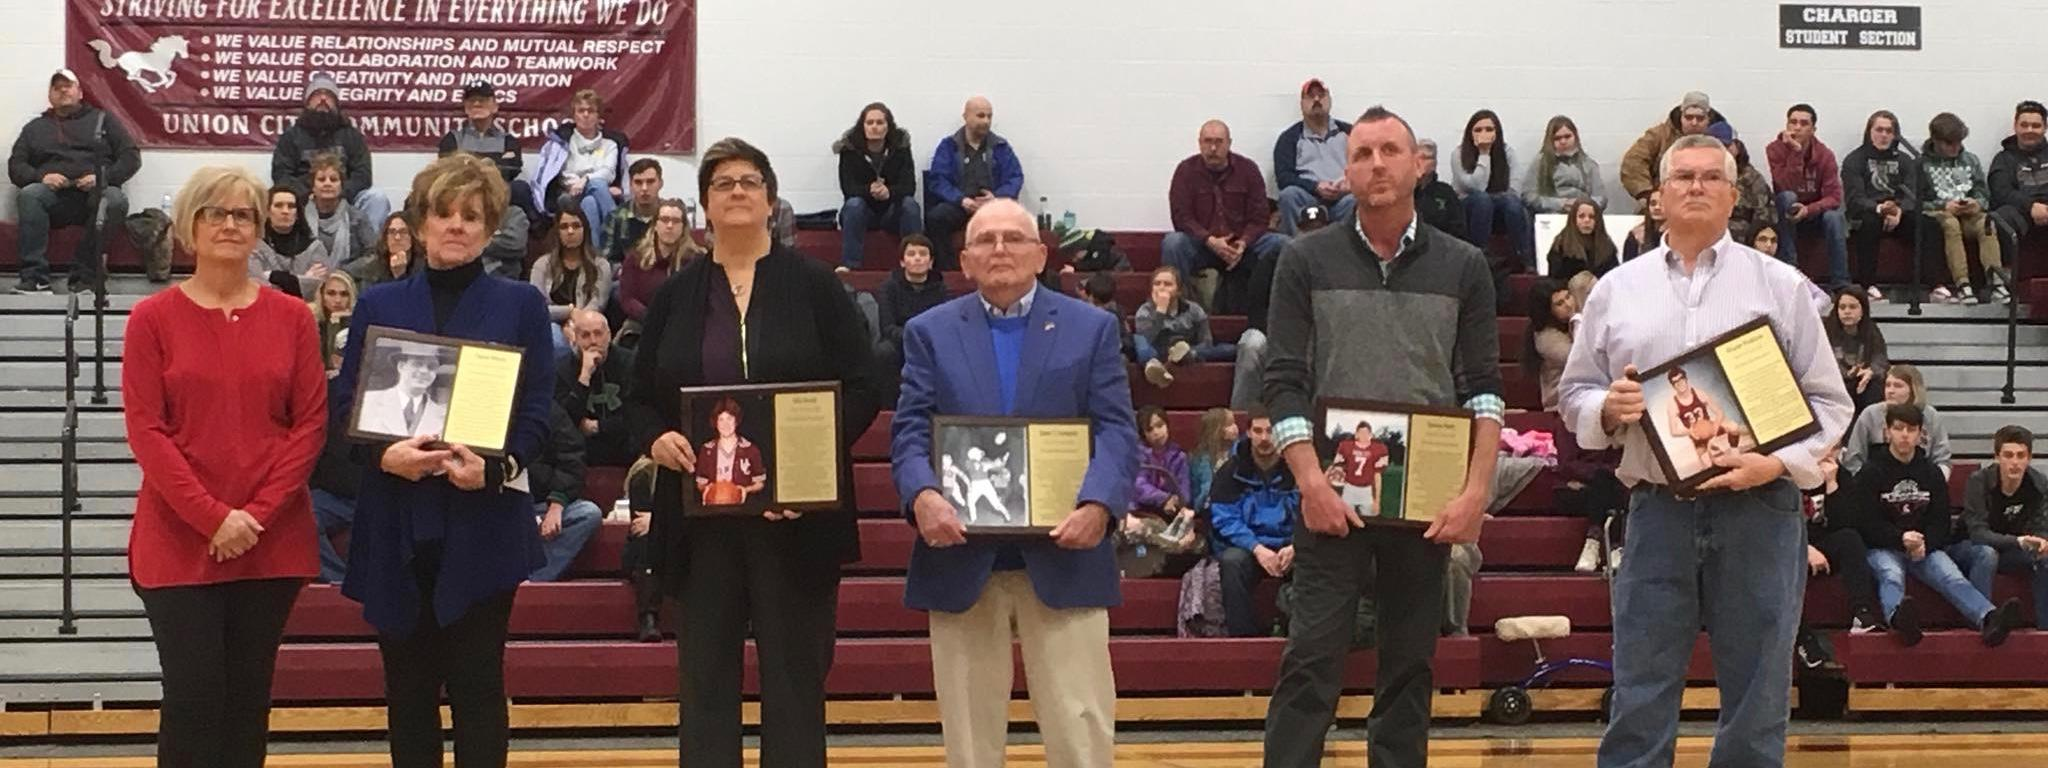 Photo of Hall of Fame Award Winners